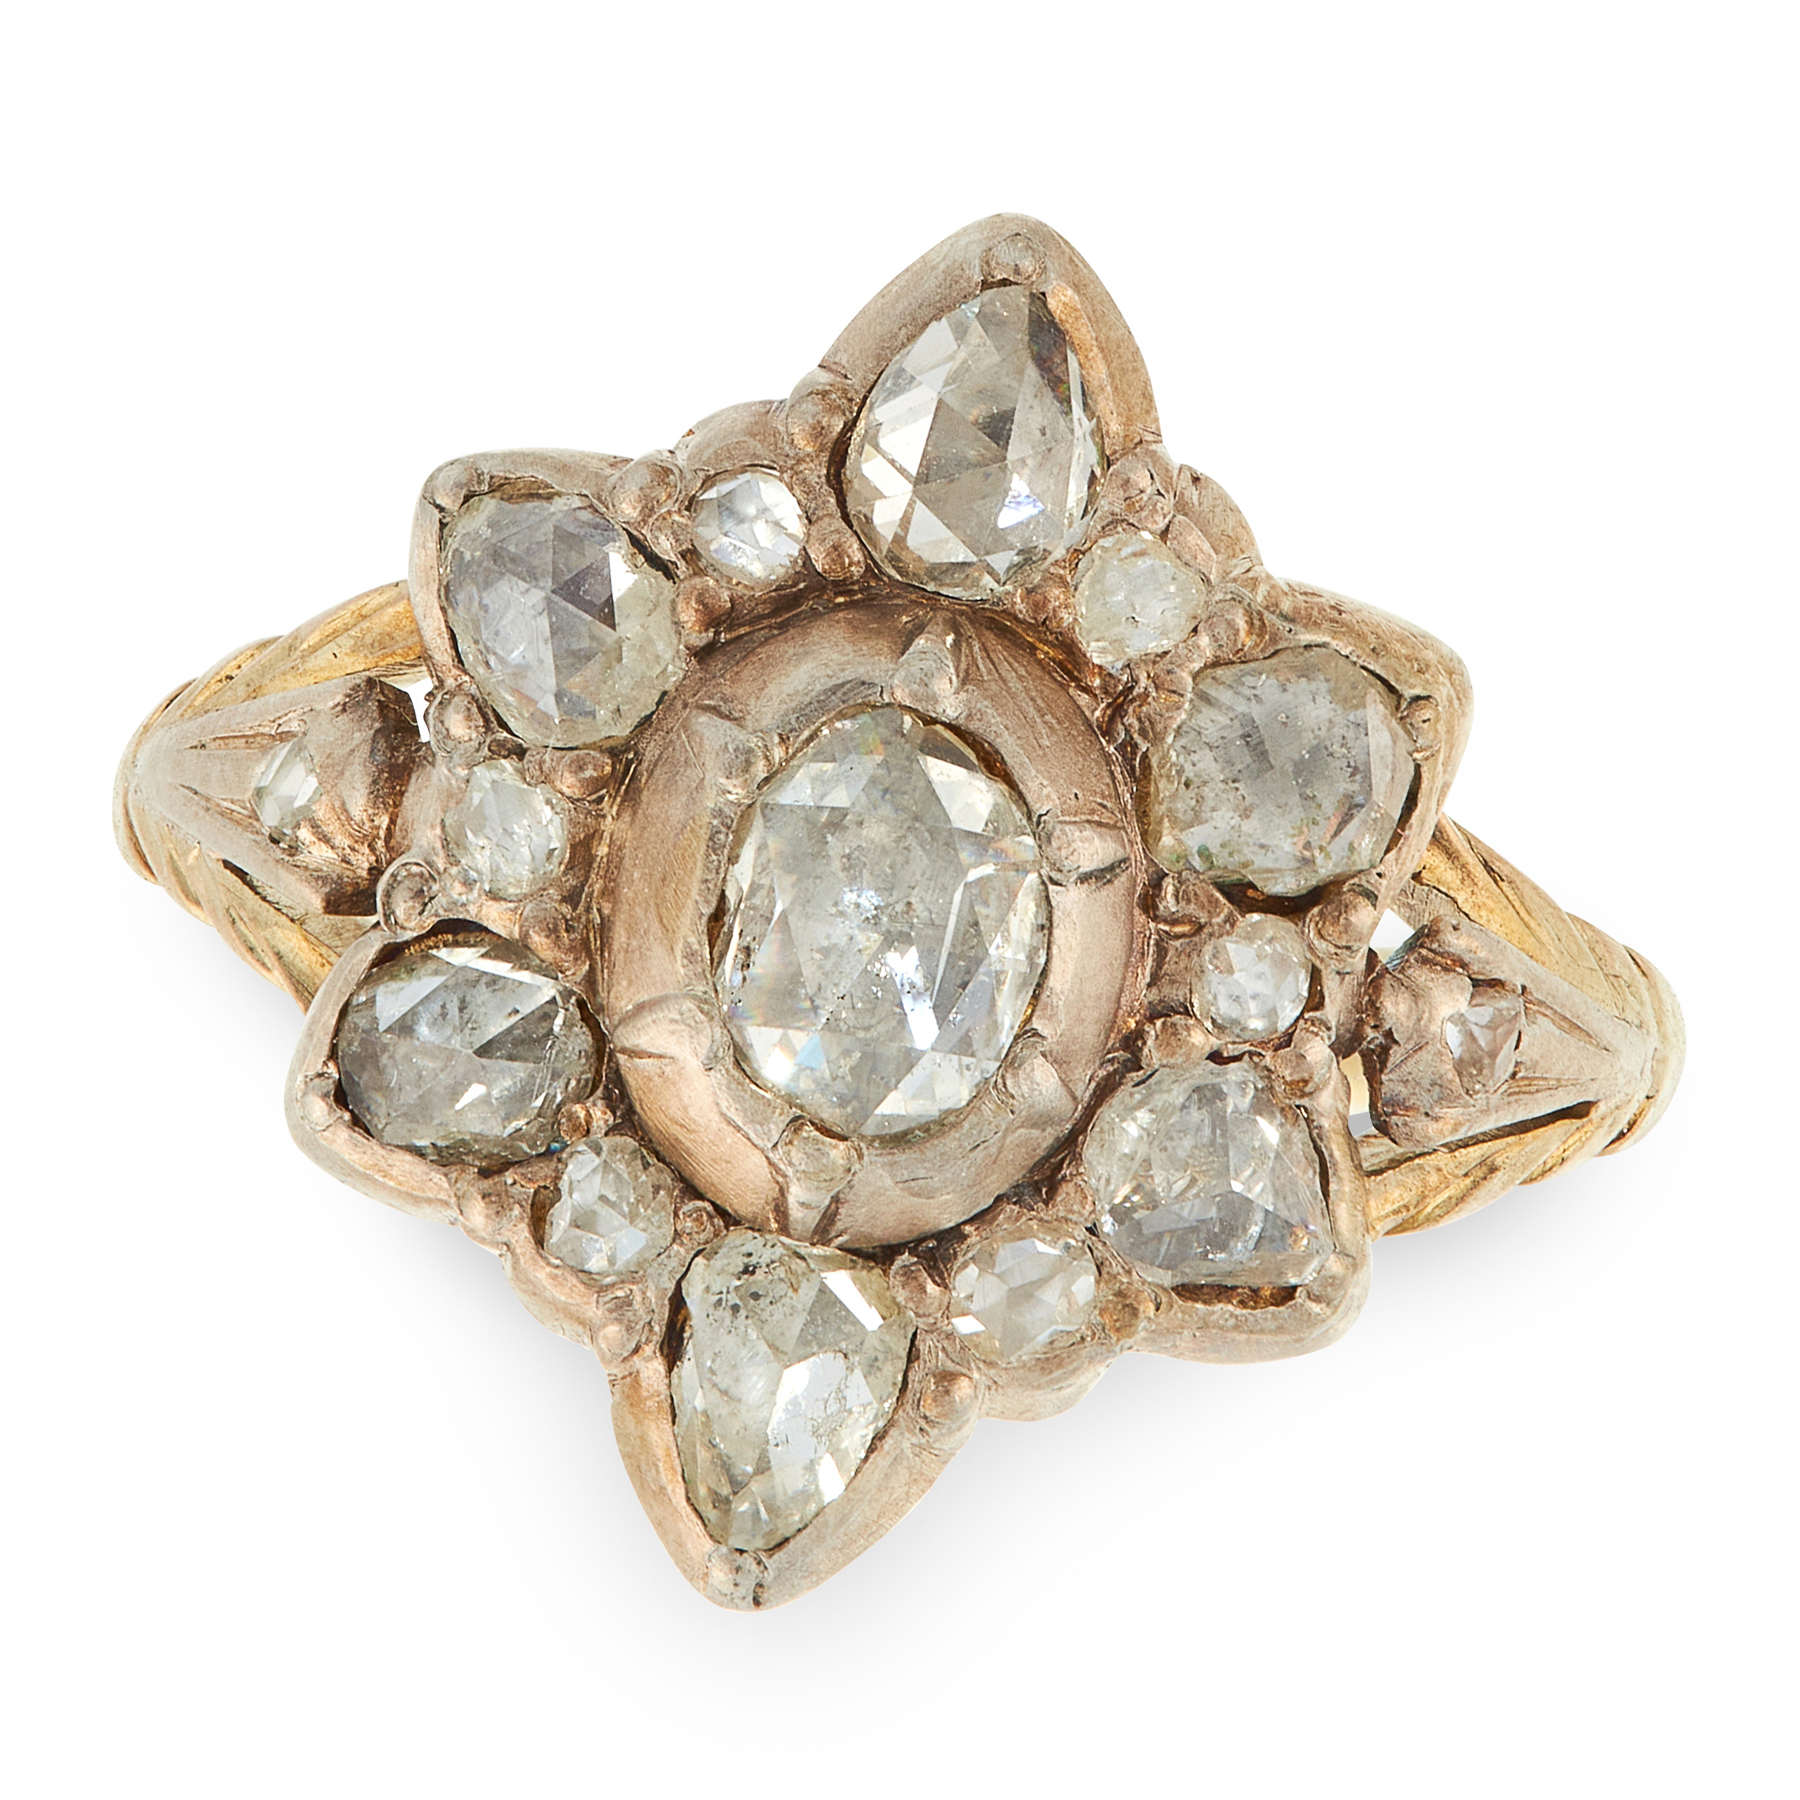 AN ANTIQUE DIAMOND RING, 19TH CENTURY in yellow gold and silver, set with a central rose cut diamond - Image 2 of 2